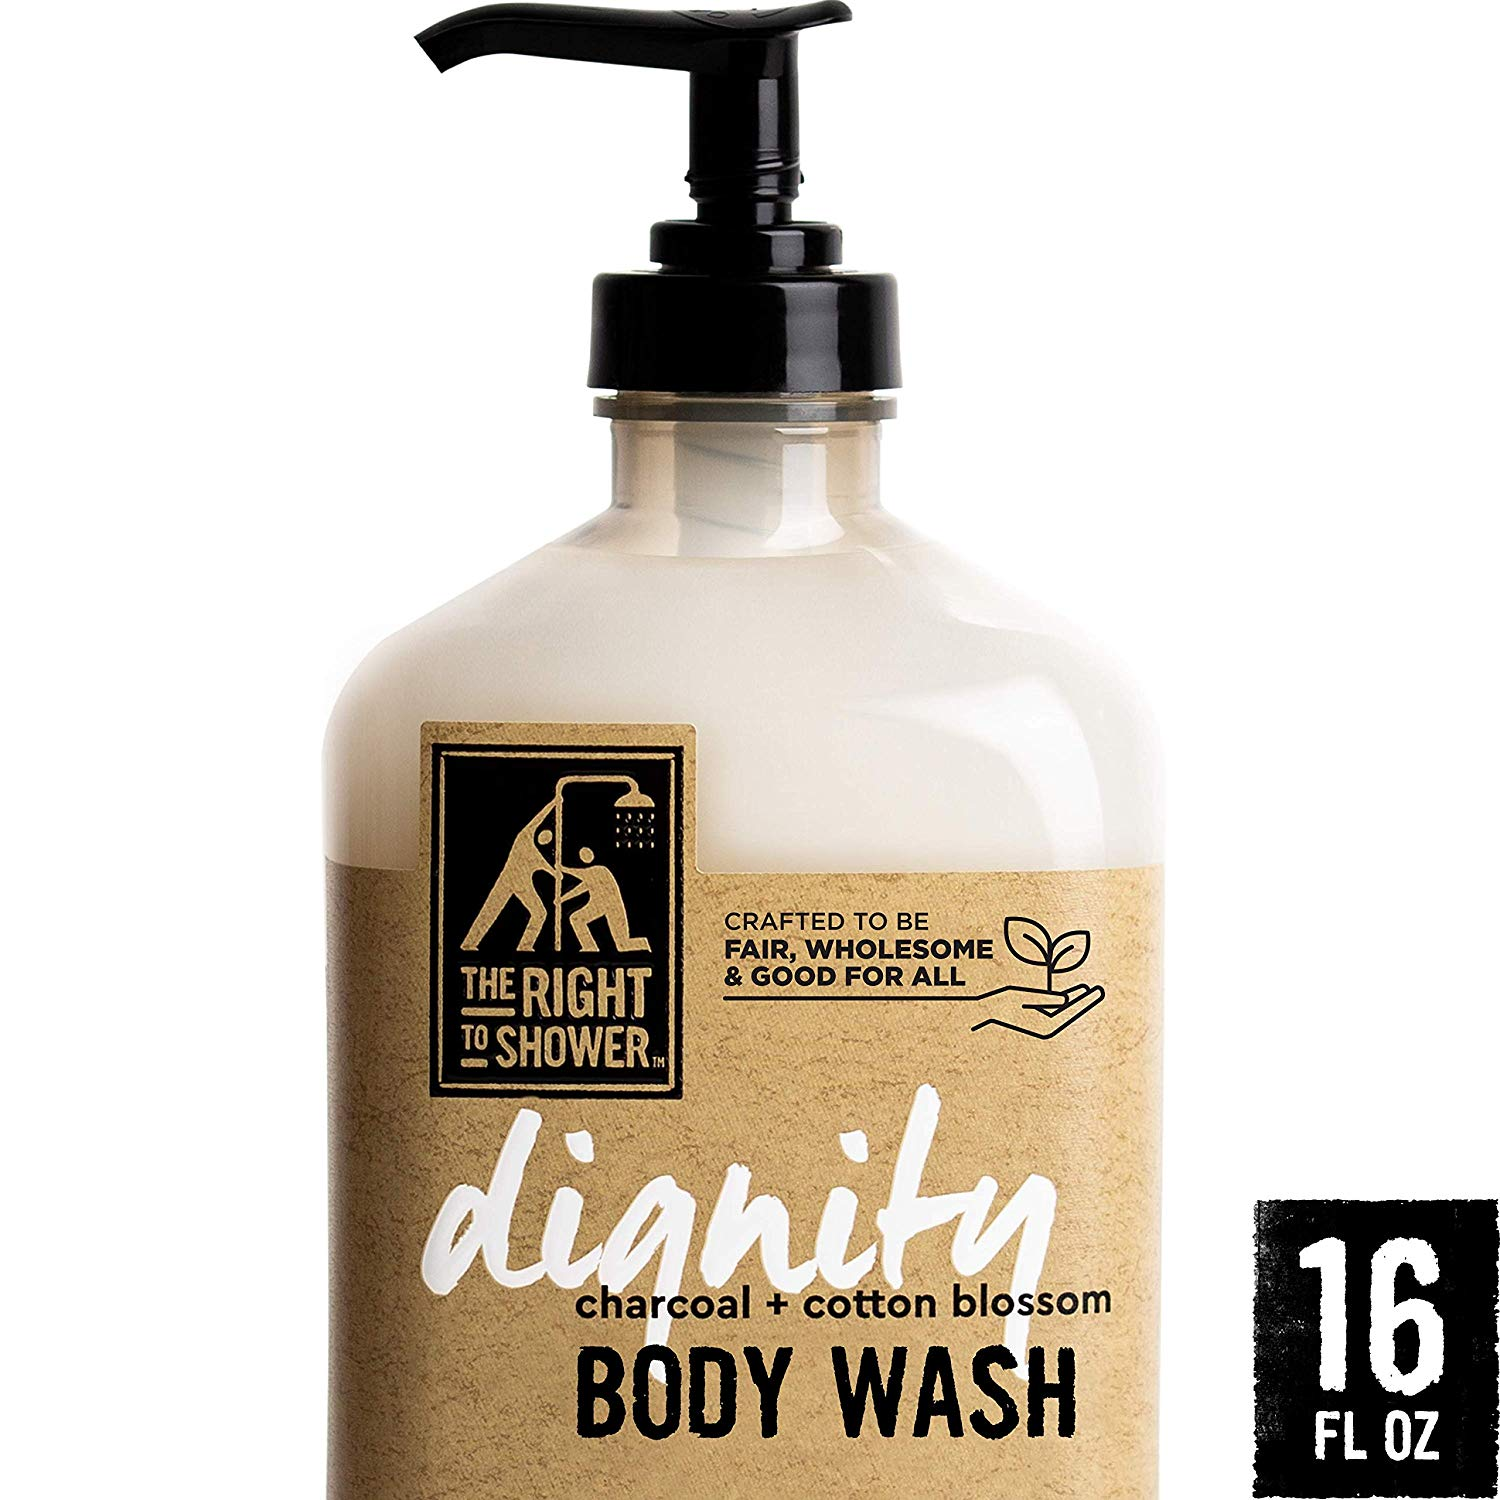 The Right to Shower Body Wash, Charcoal Cotton Blossom